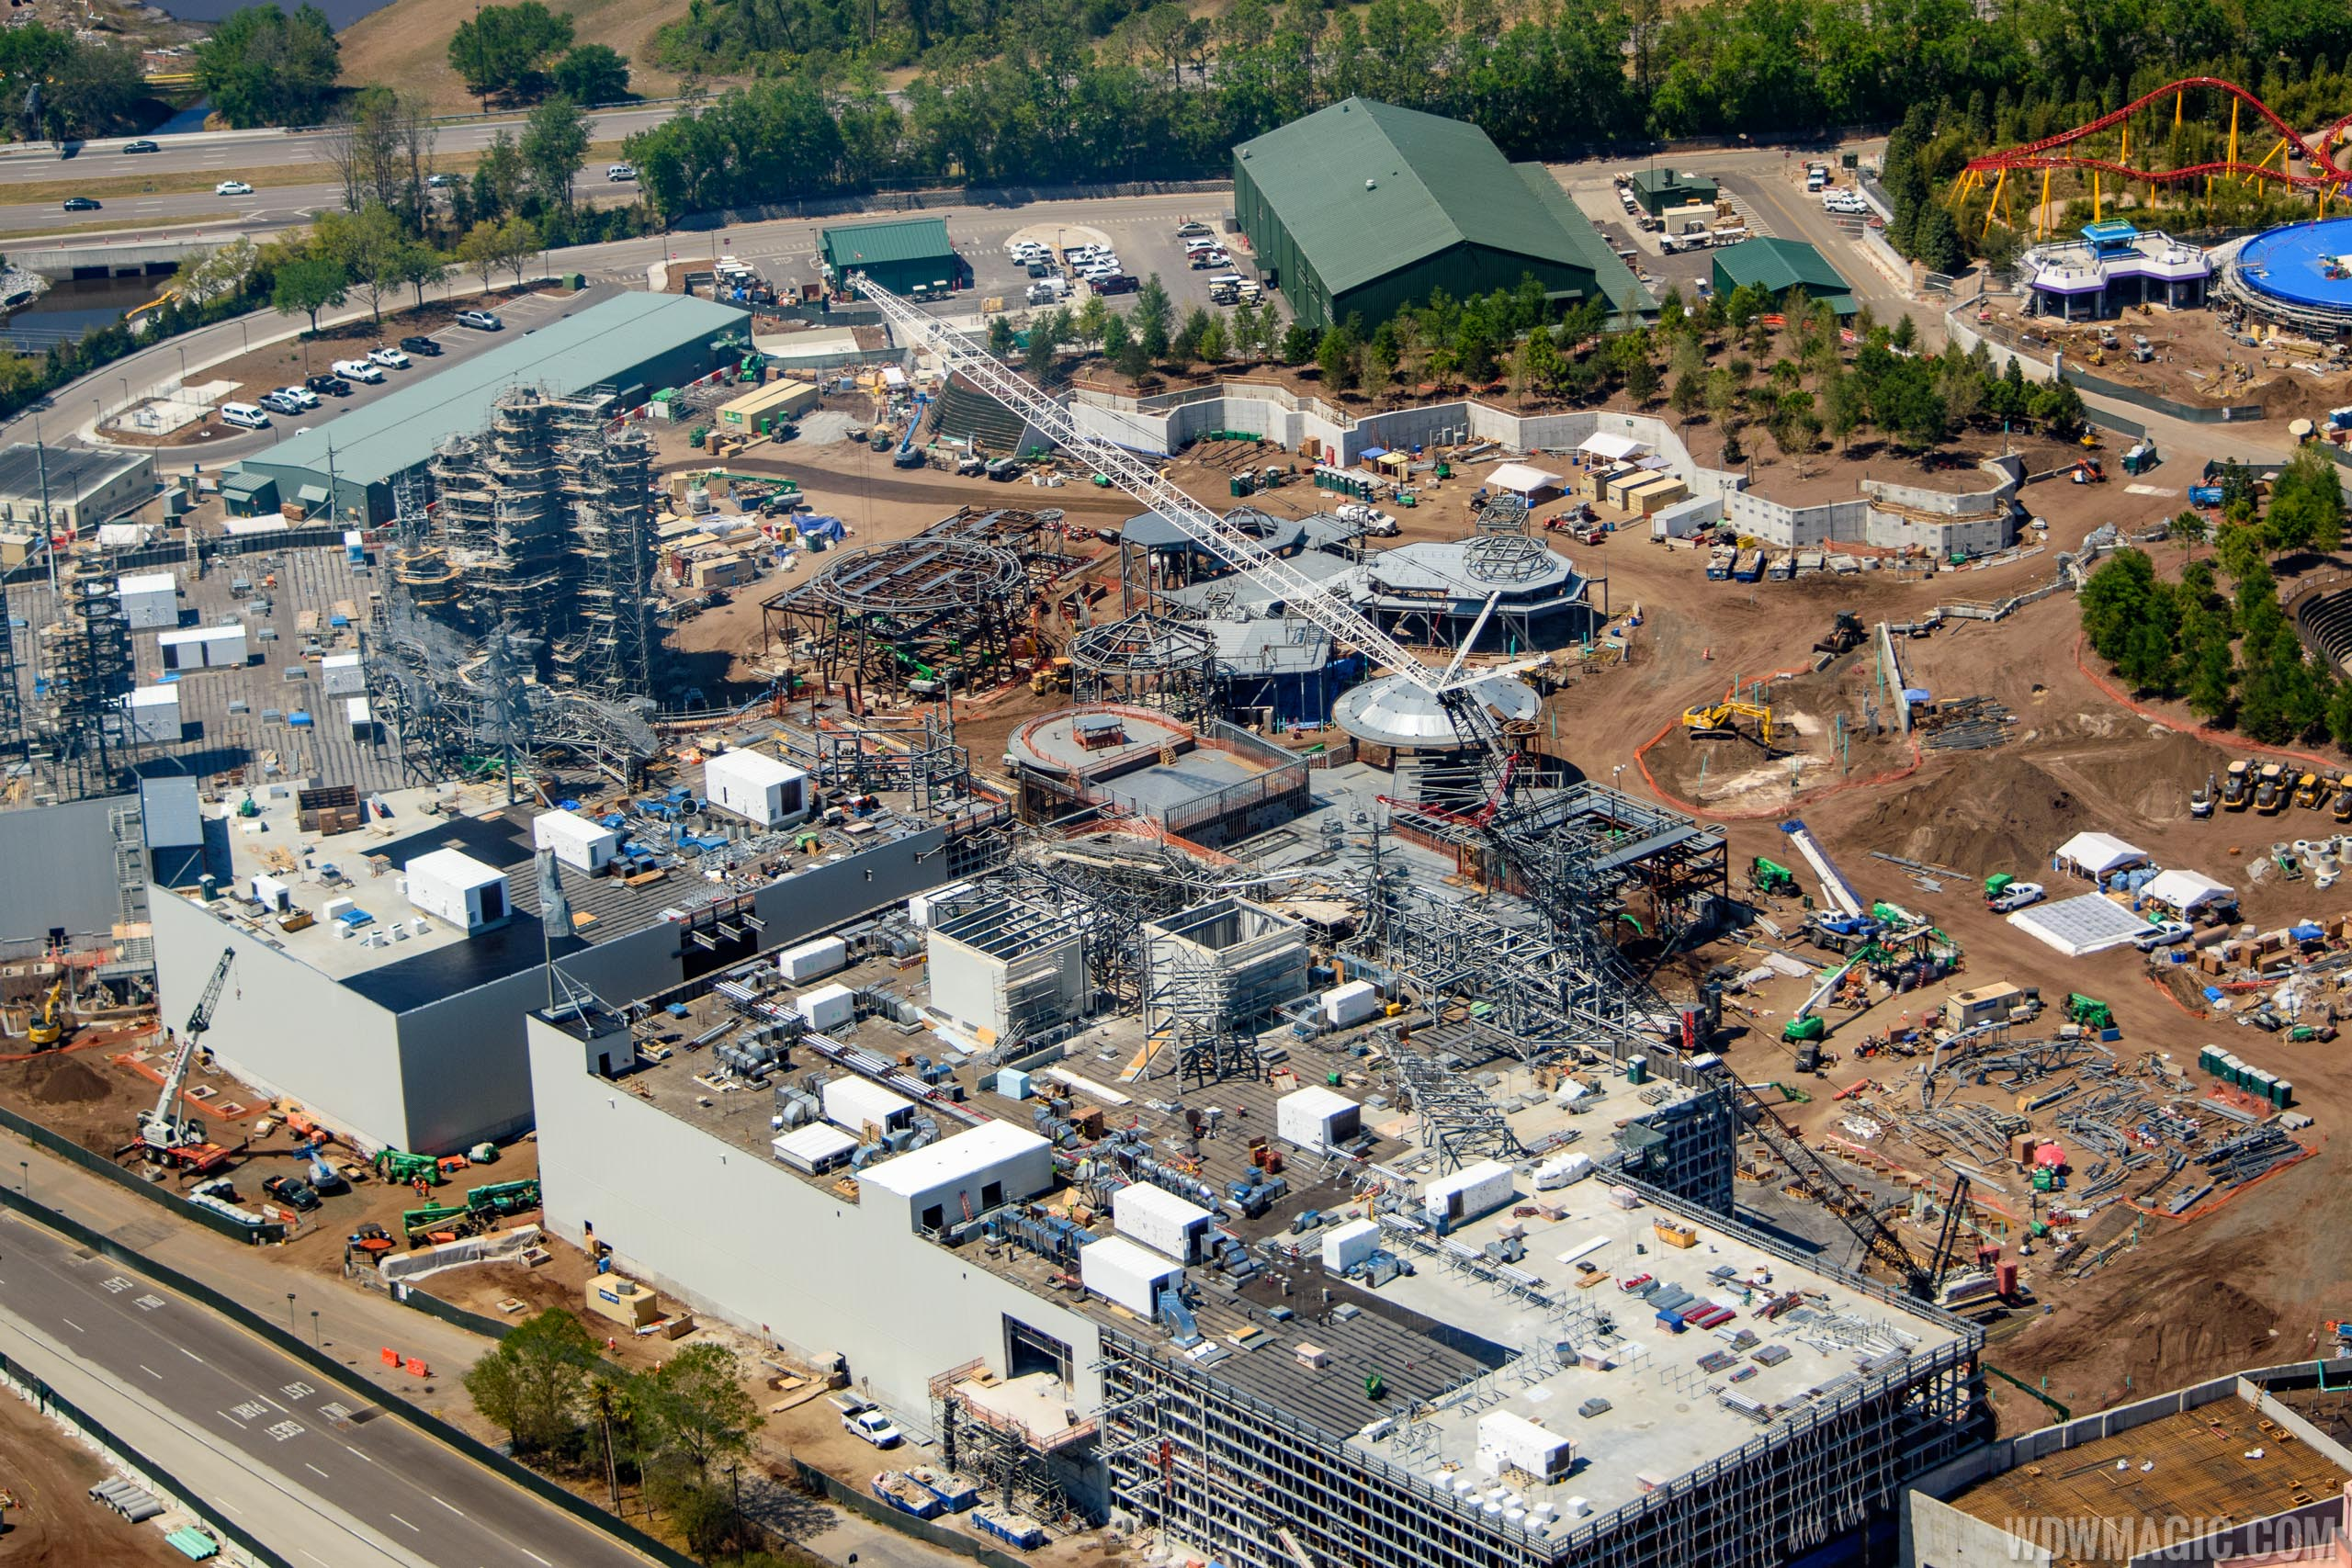 Photos Aerial Pictures Of Star Wars Galaxy S Edge Construction At Disney S Hollywood Studios